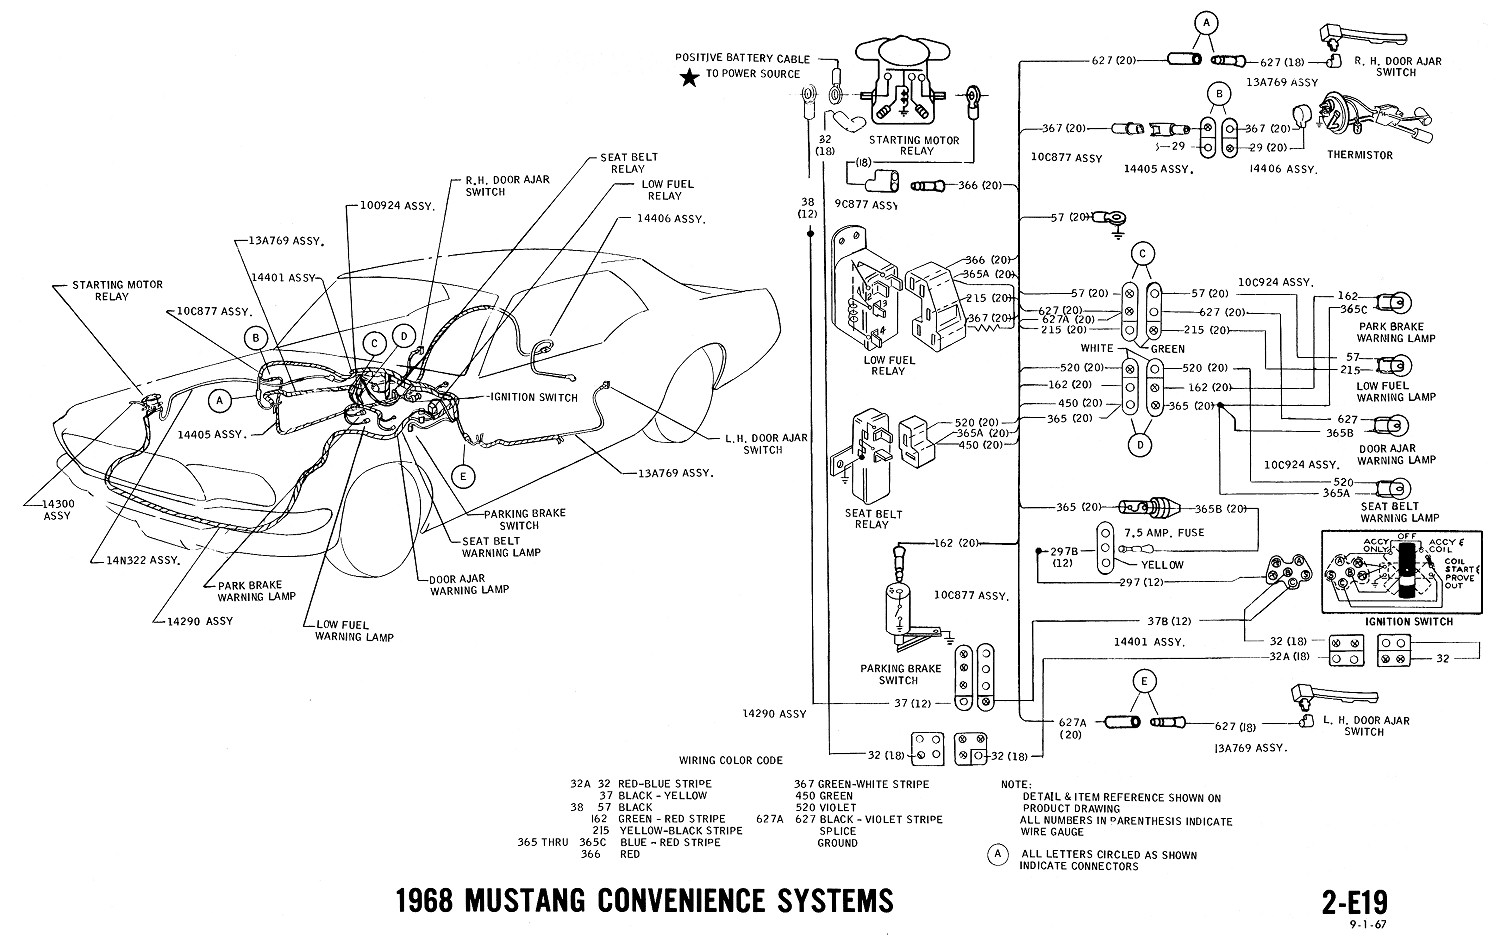 control wiring diagram symbols with 1968 Mustang Wiring Diagrams on T11540661 Replace water inlet valve miele as well Carrier Ac Unit Wiring Diagram together with 300w Power Inverter Circuit additionally Intro To Electrical Diagrams in addition Conexion Resistencias Horno Trifasico Industrial T1256995.